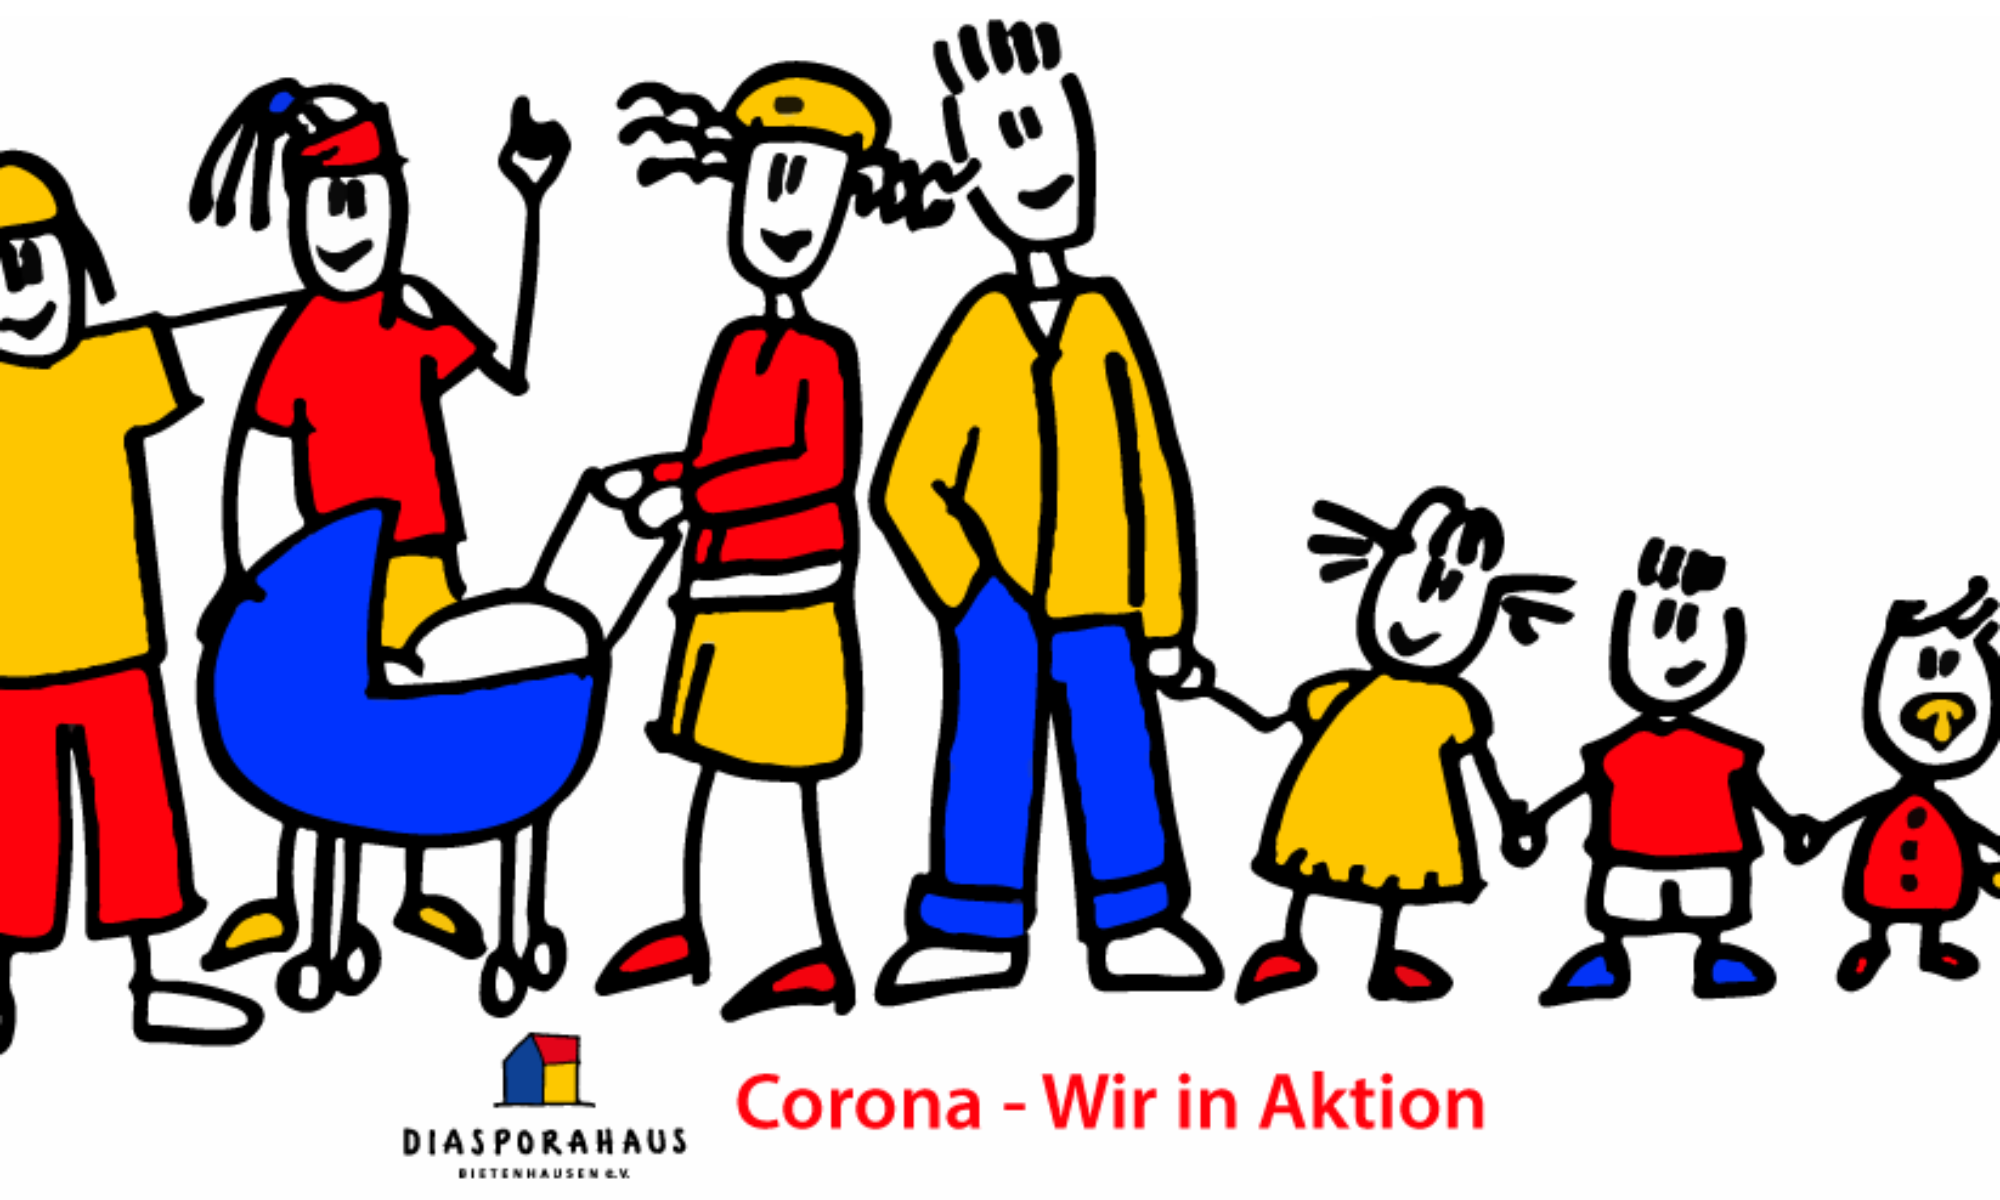 Corona - Wir in Aktion